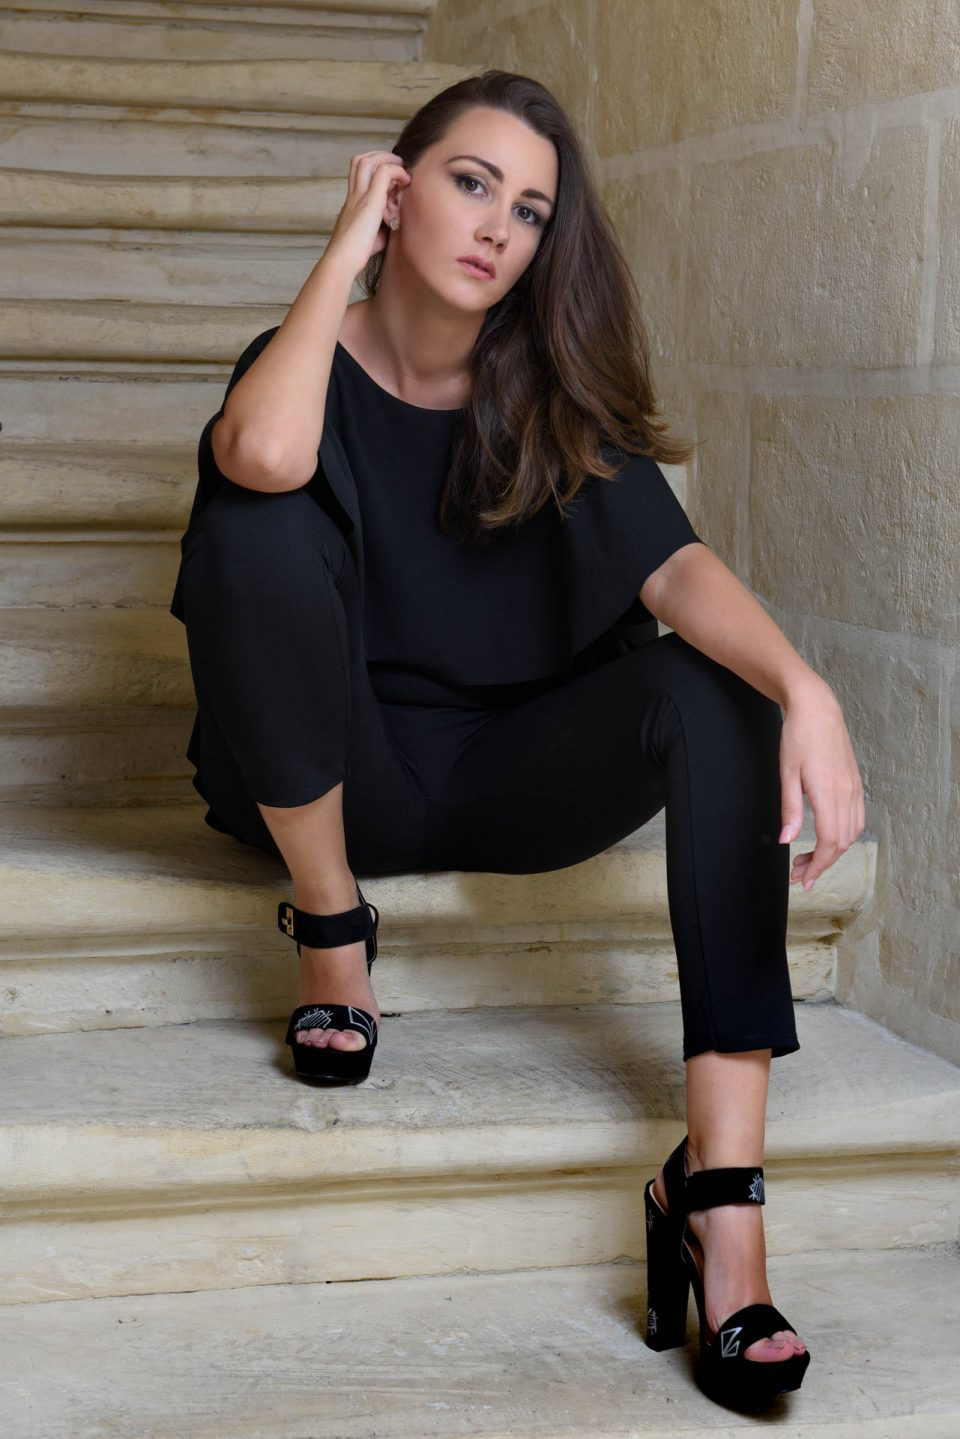 Fashion photography, Desiree fashion design, Malta